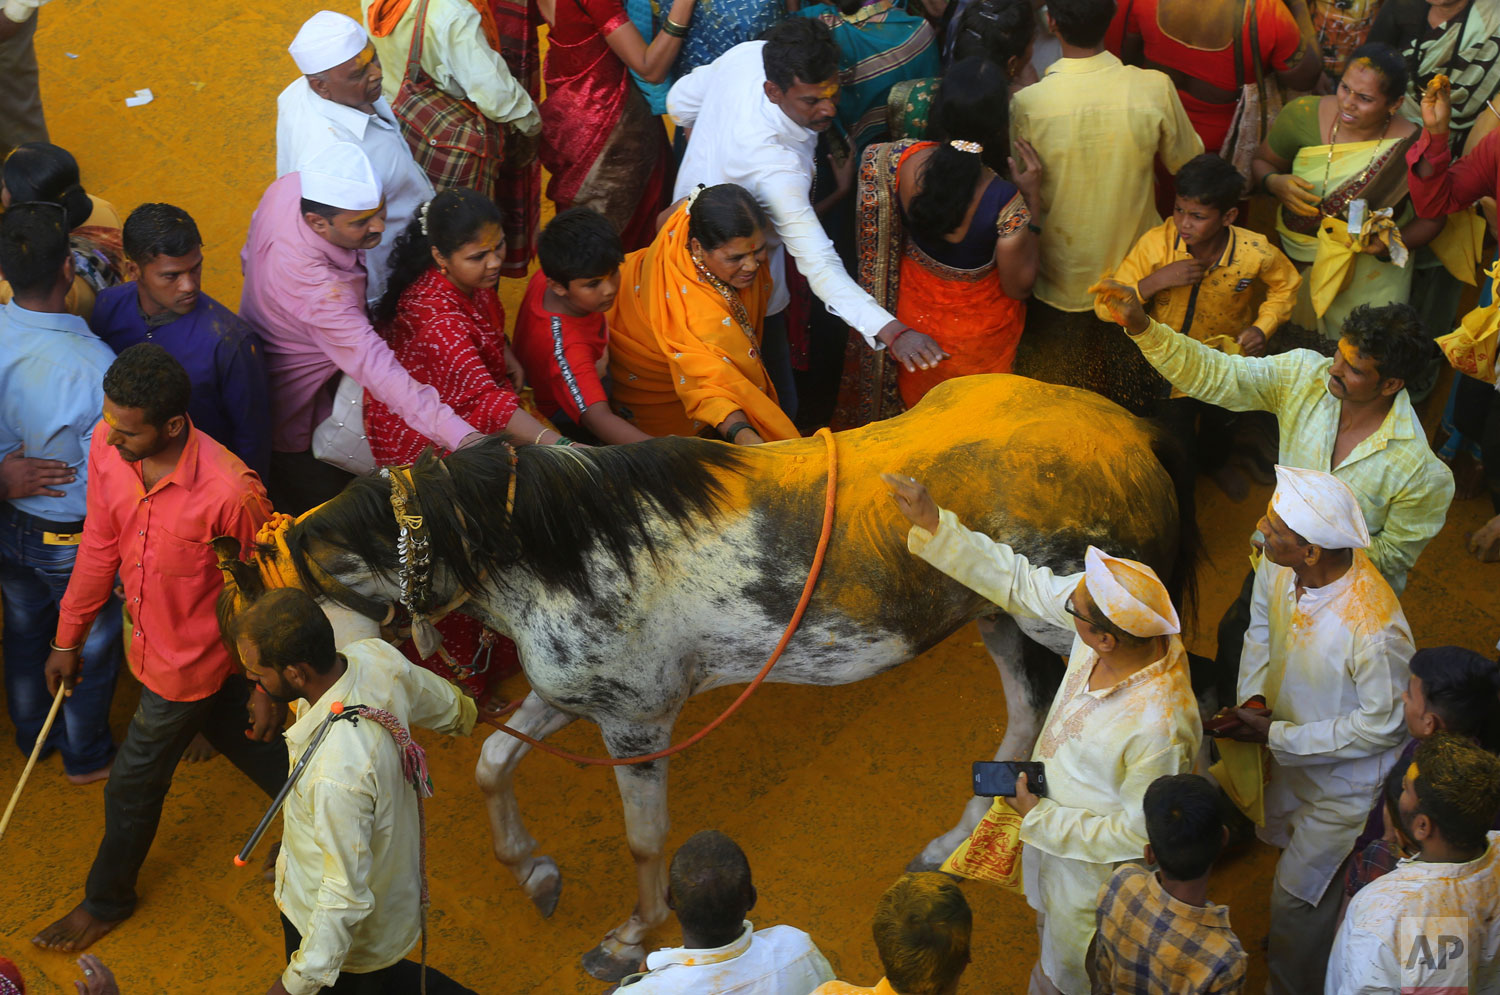 Devotees throw turmeric powder on a holy horse as an offering to the shepherd god Khandoba on 'Somavati  during a procession at the temple of the shepherd god Khandoba on 'Somavati Amavasya' at the Jejuri temple in Pune district, Maharashtra state, India, Monday, June 3, 2019. 'Somavati Amavasya' is the day when a New Moon falls on a Monday.(AP Photo/Rafiq Maqbool)